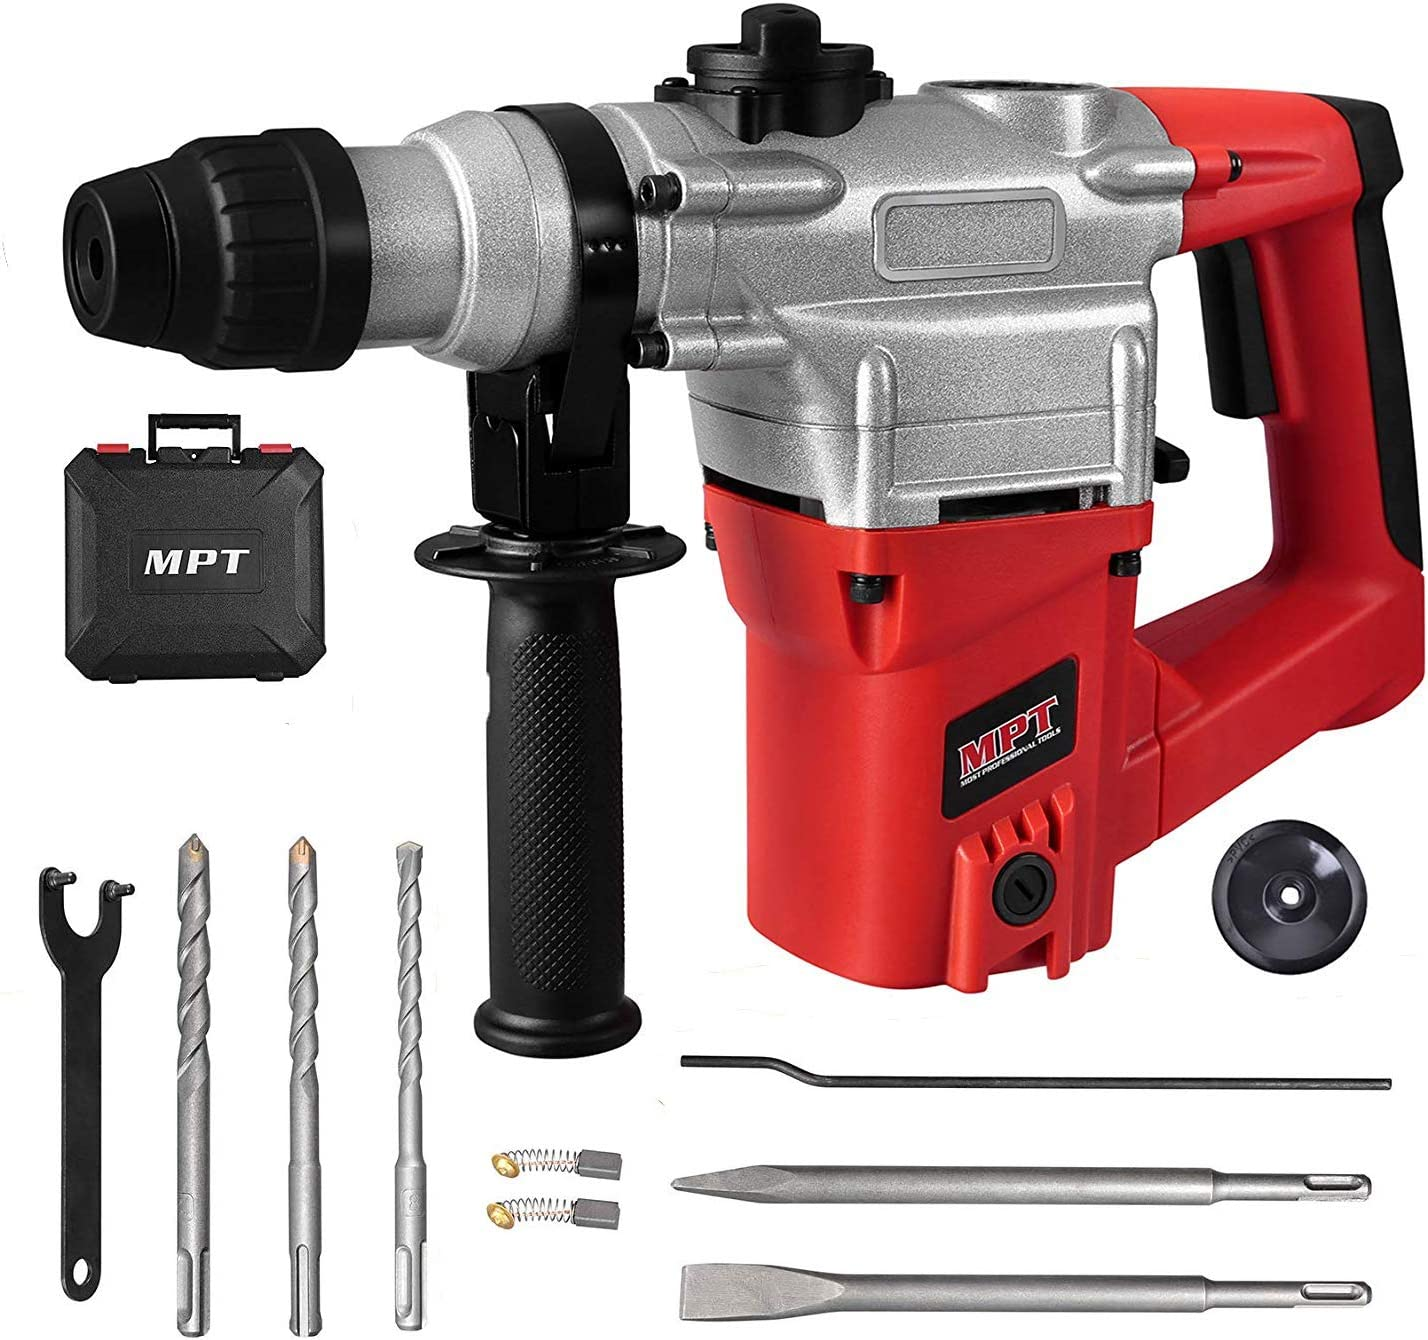 MPT 1 Inch SDS-plus Rotary Hammer Drill